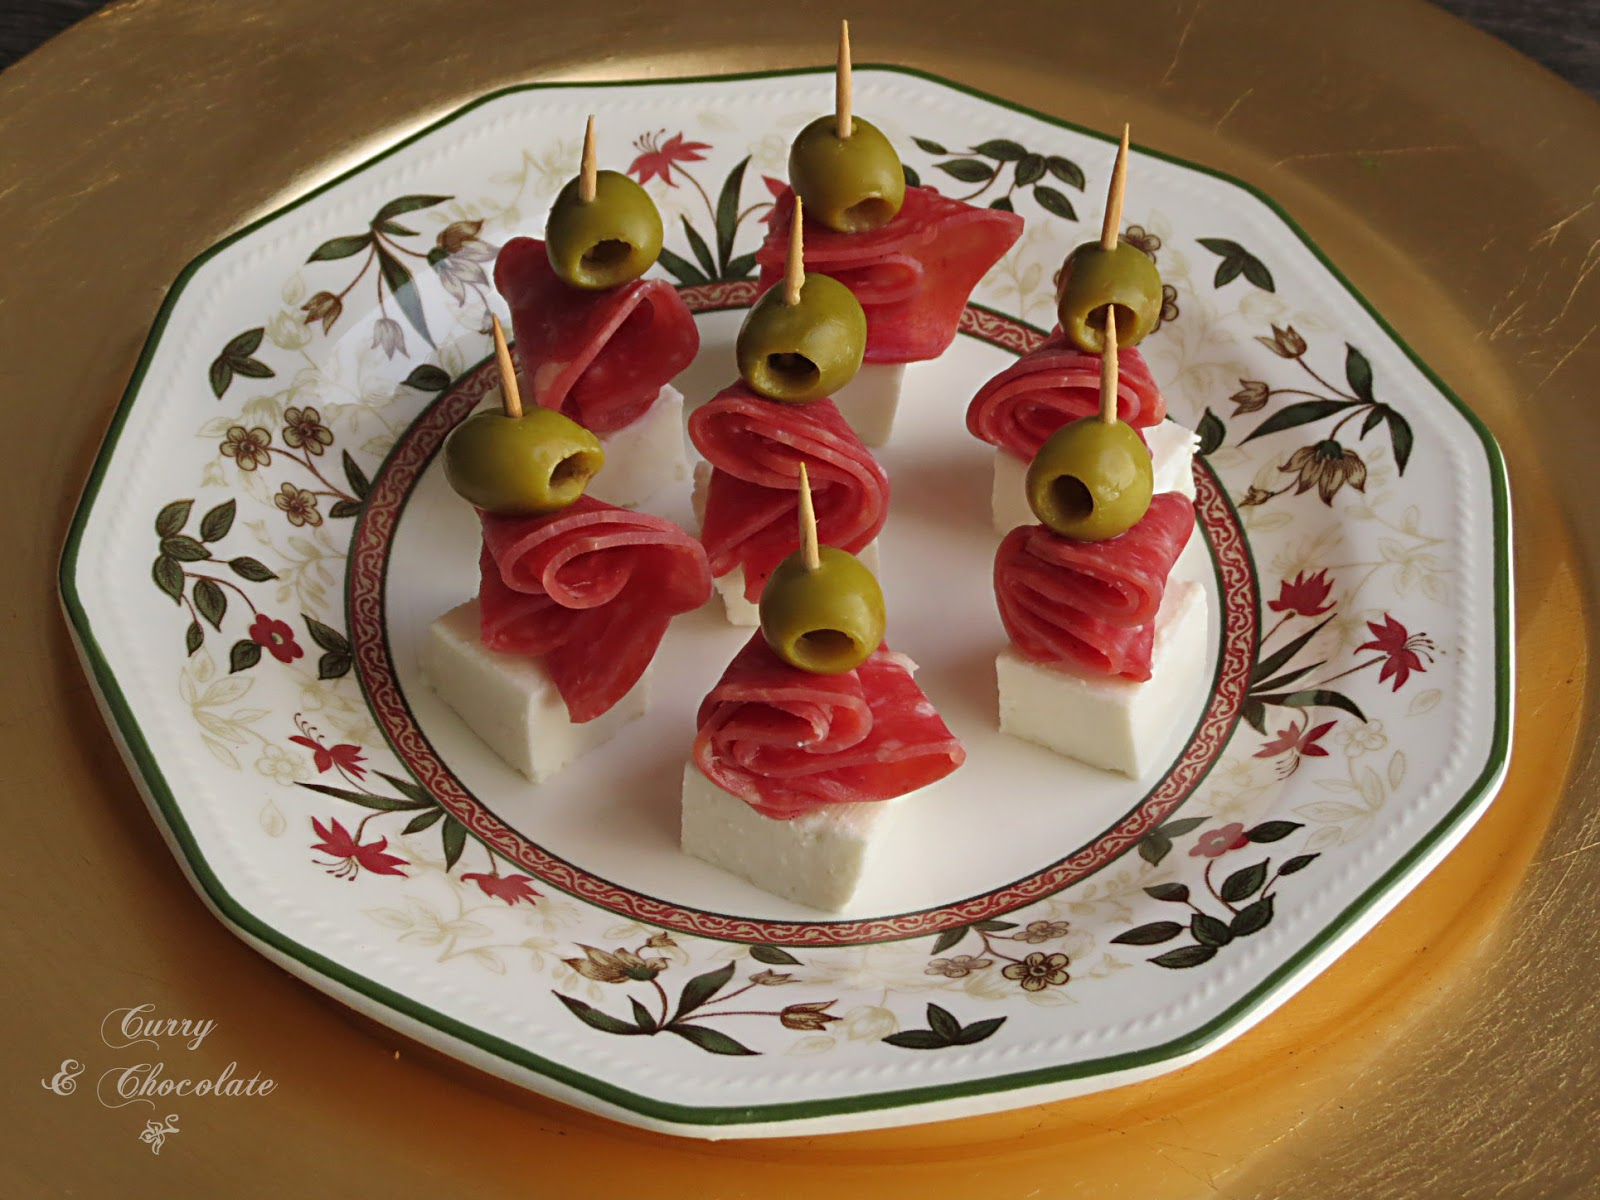 Curry y chocolate canap s f ciles parte 4 for Canape de jamon y queso